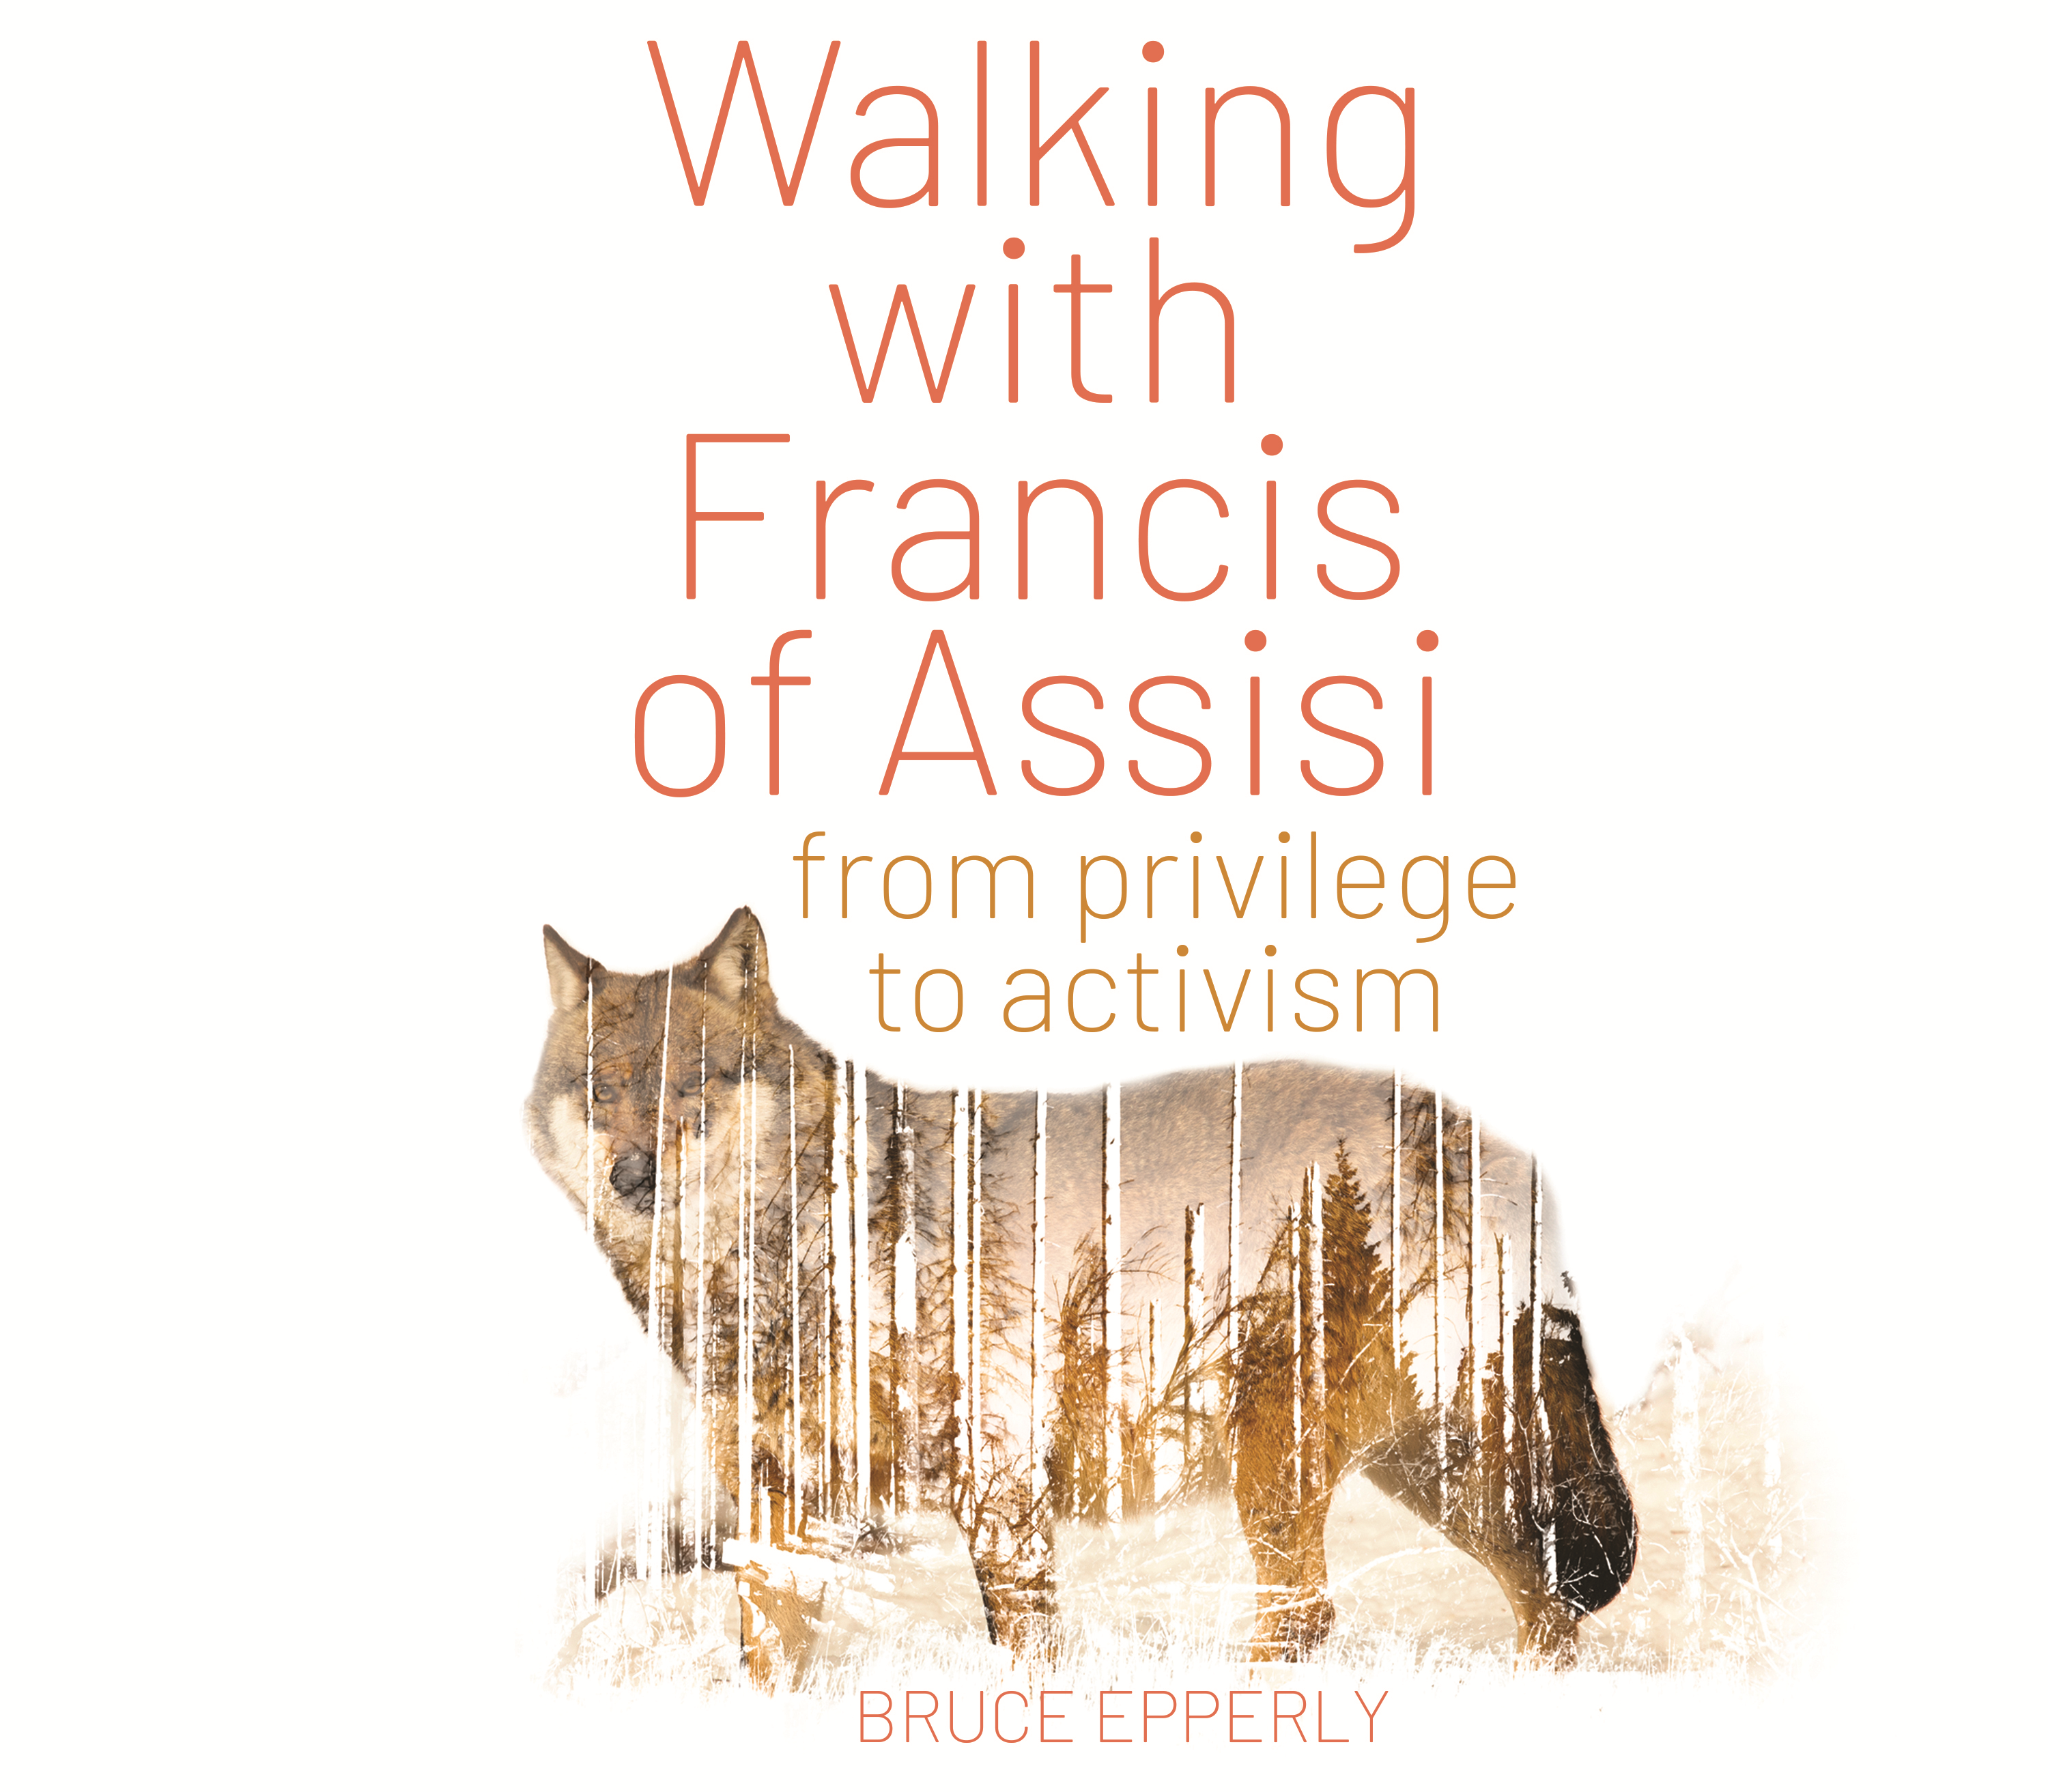 Walking with Francis of Assisi